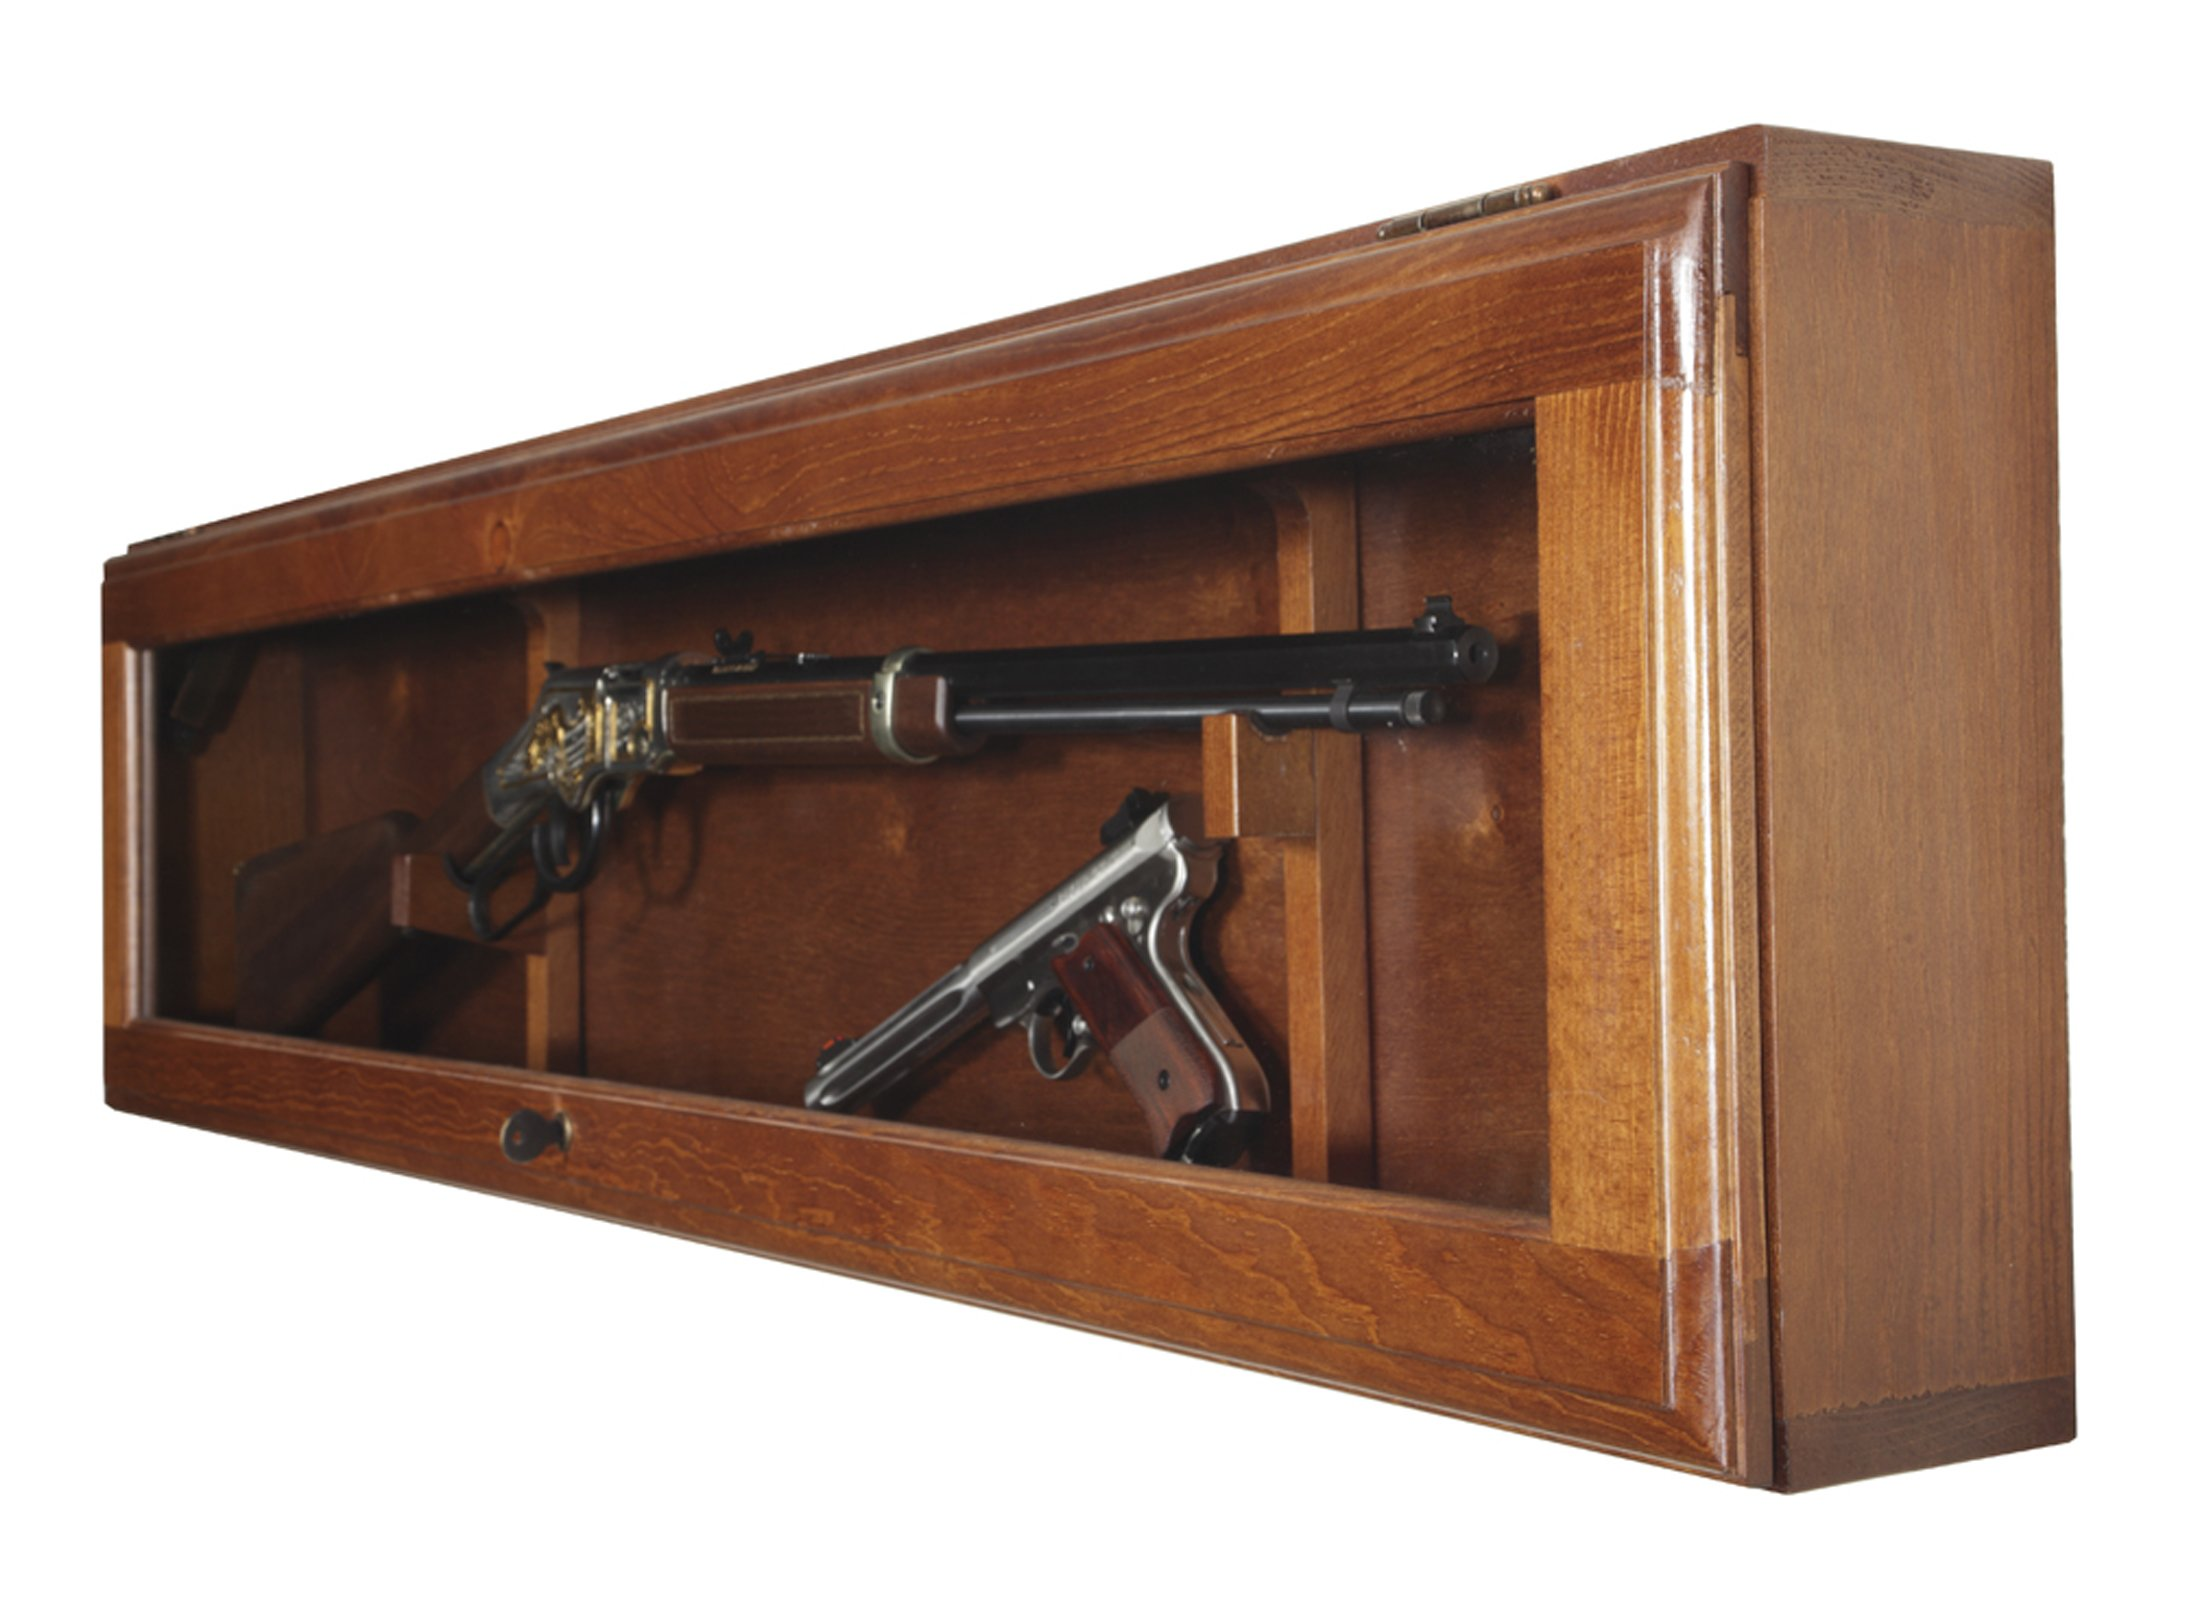 American Furniture Classics Horizontal Gun Display Cabinet